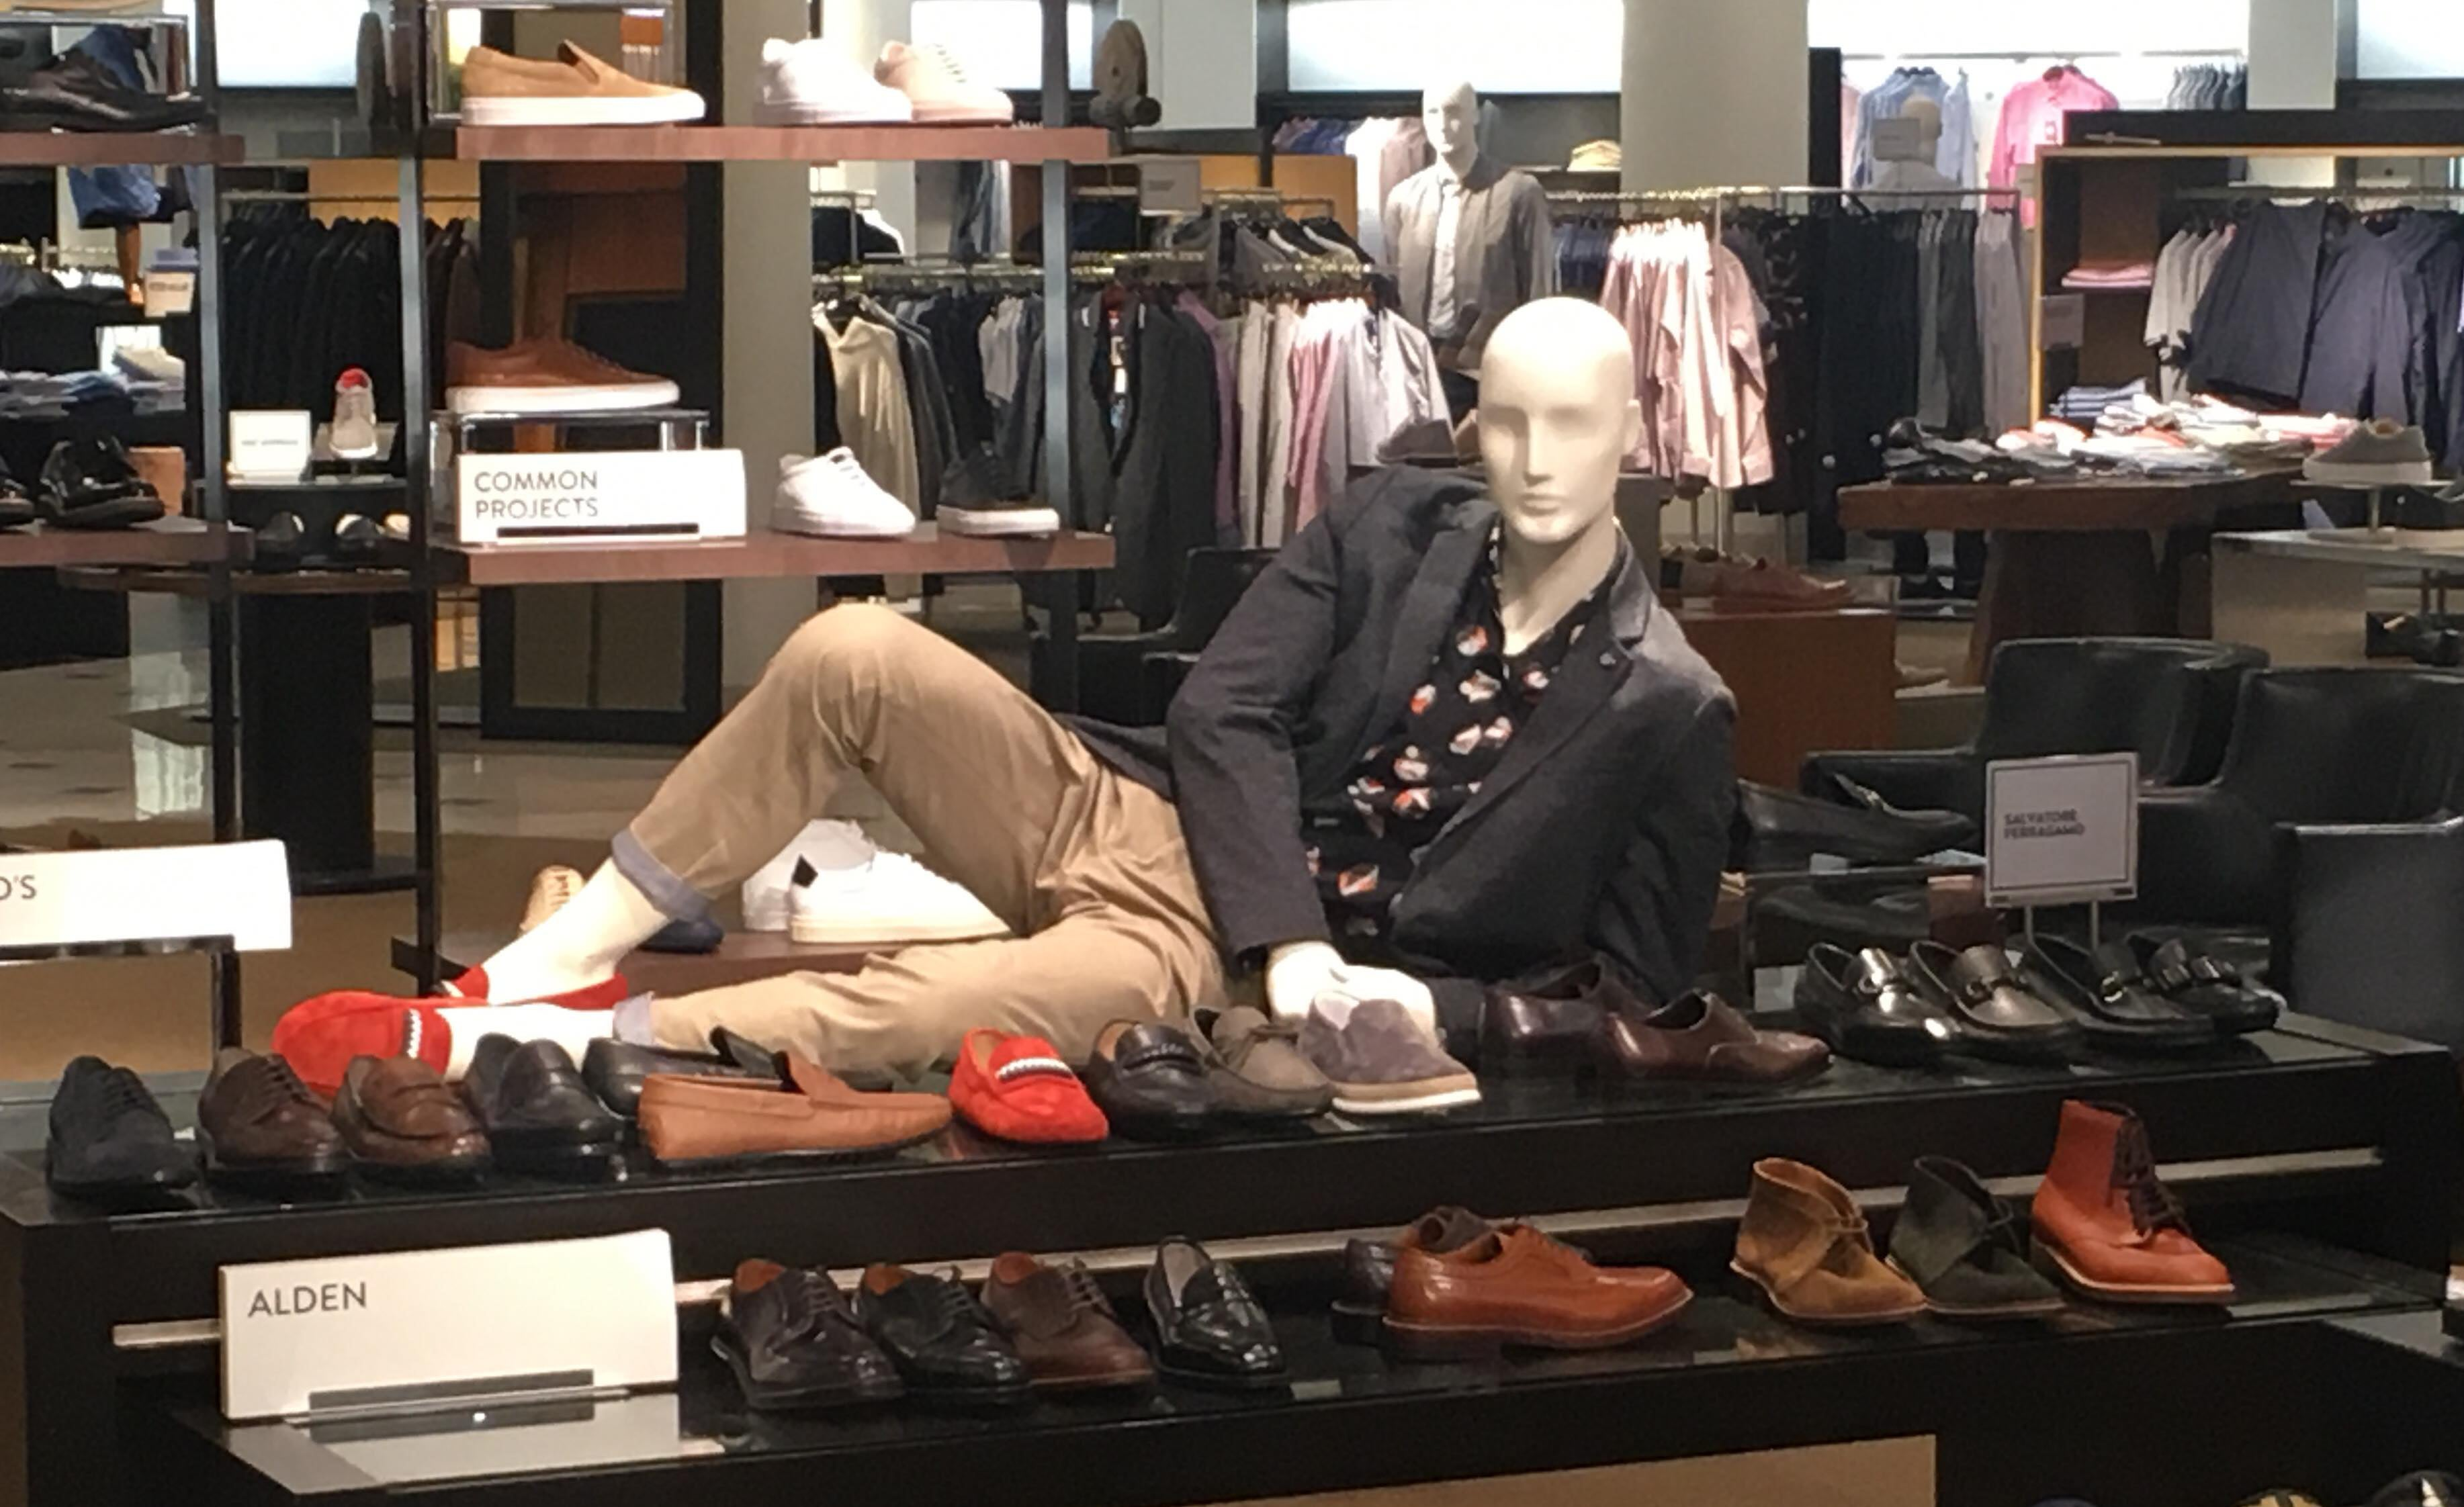 To Understand Twitch's New Dress Code, I Went To A Mall